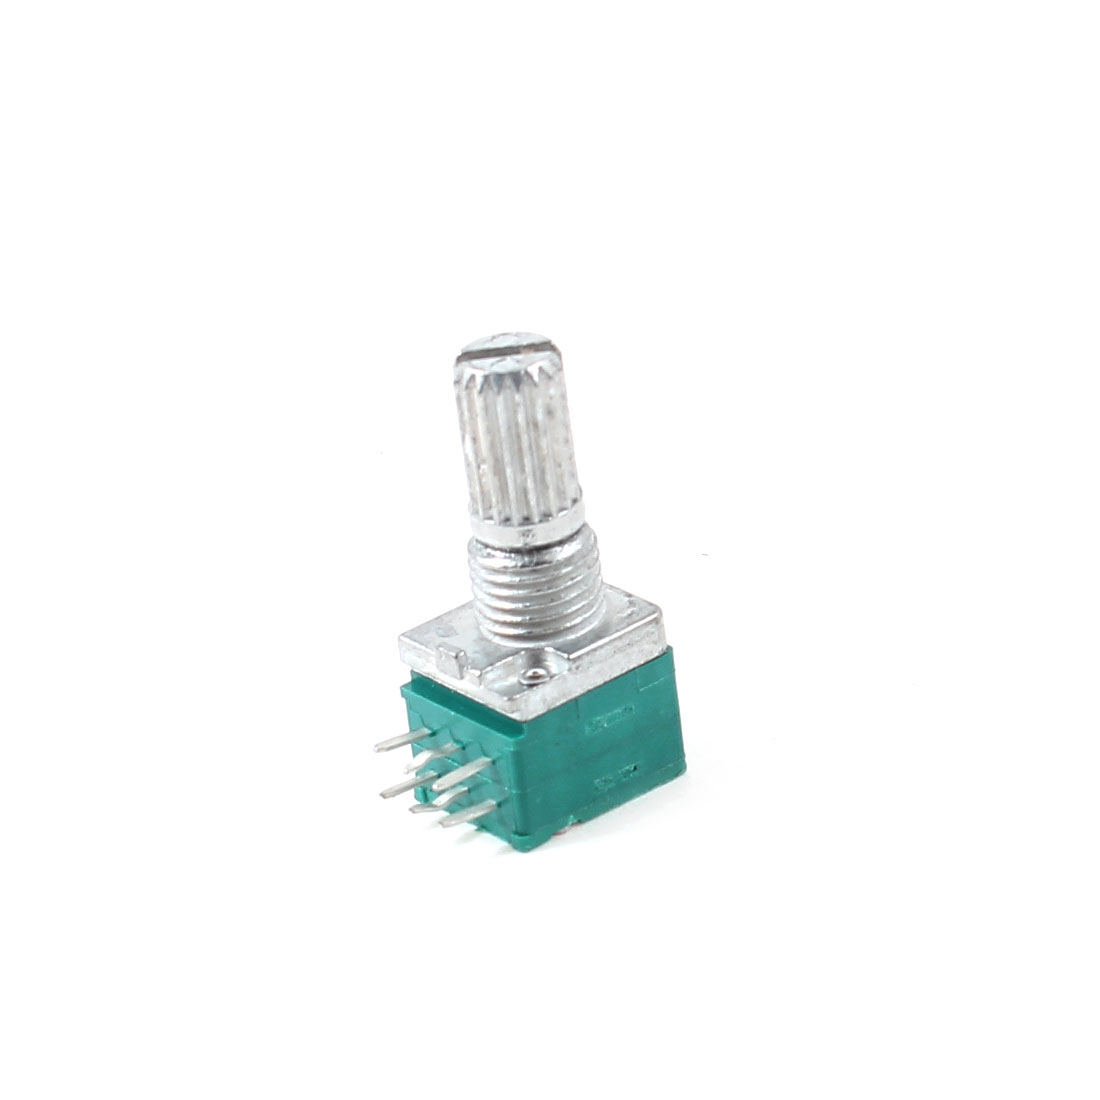 6mm Knurled Shaft Dual Linear B 50Kohm Carbon Film Switch Rotary Potentiometer